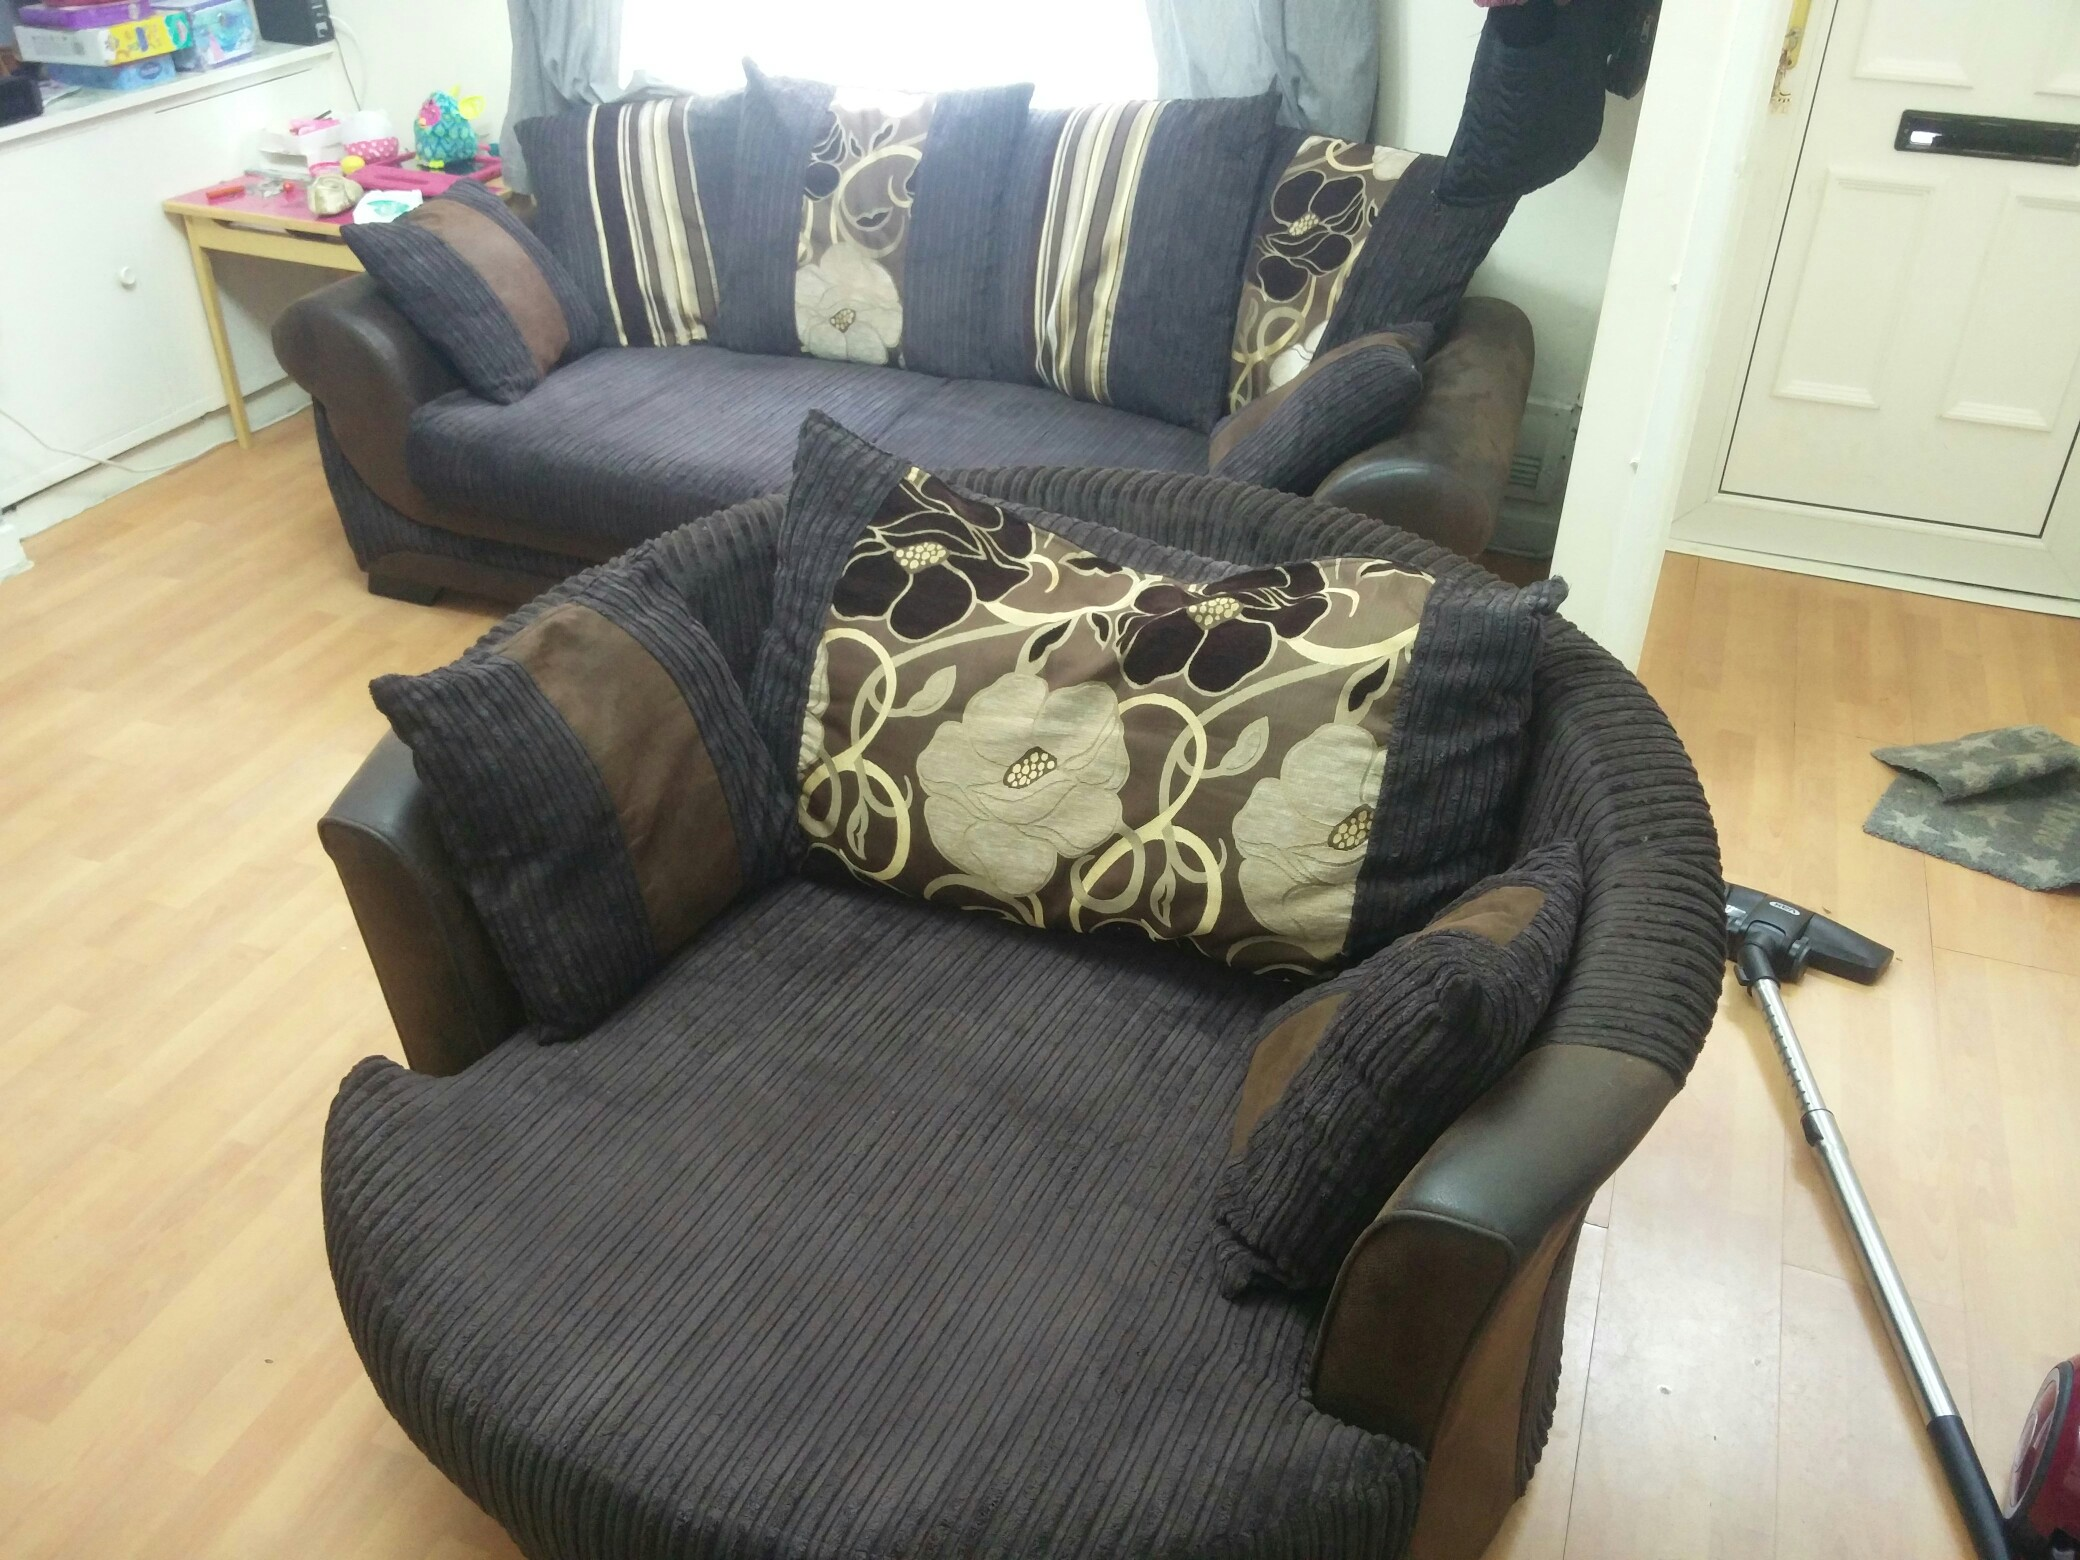 sofa Second Hand Household Furniture Buy and Sell in the UK and